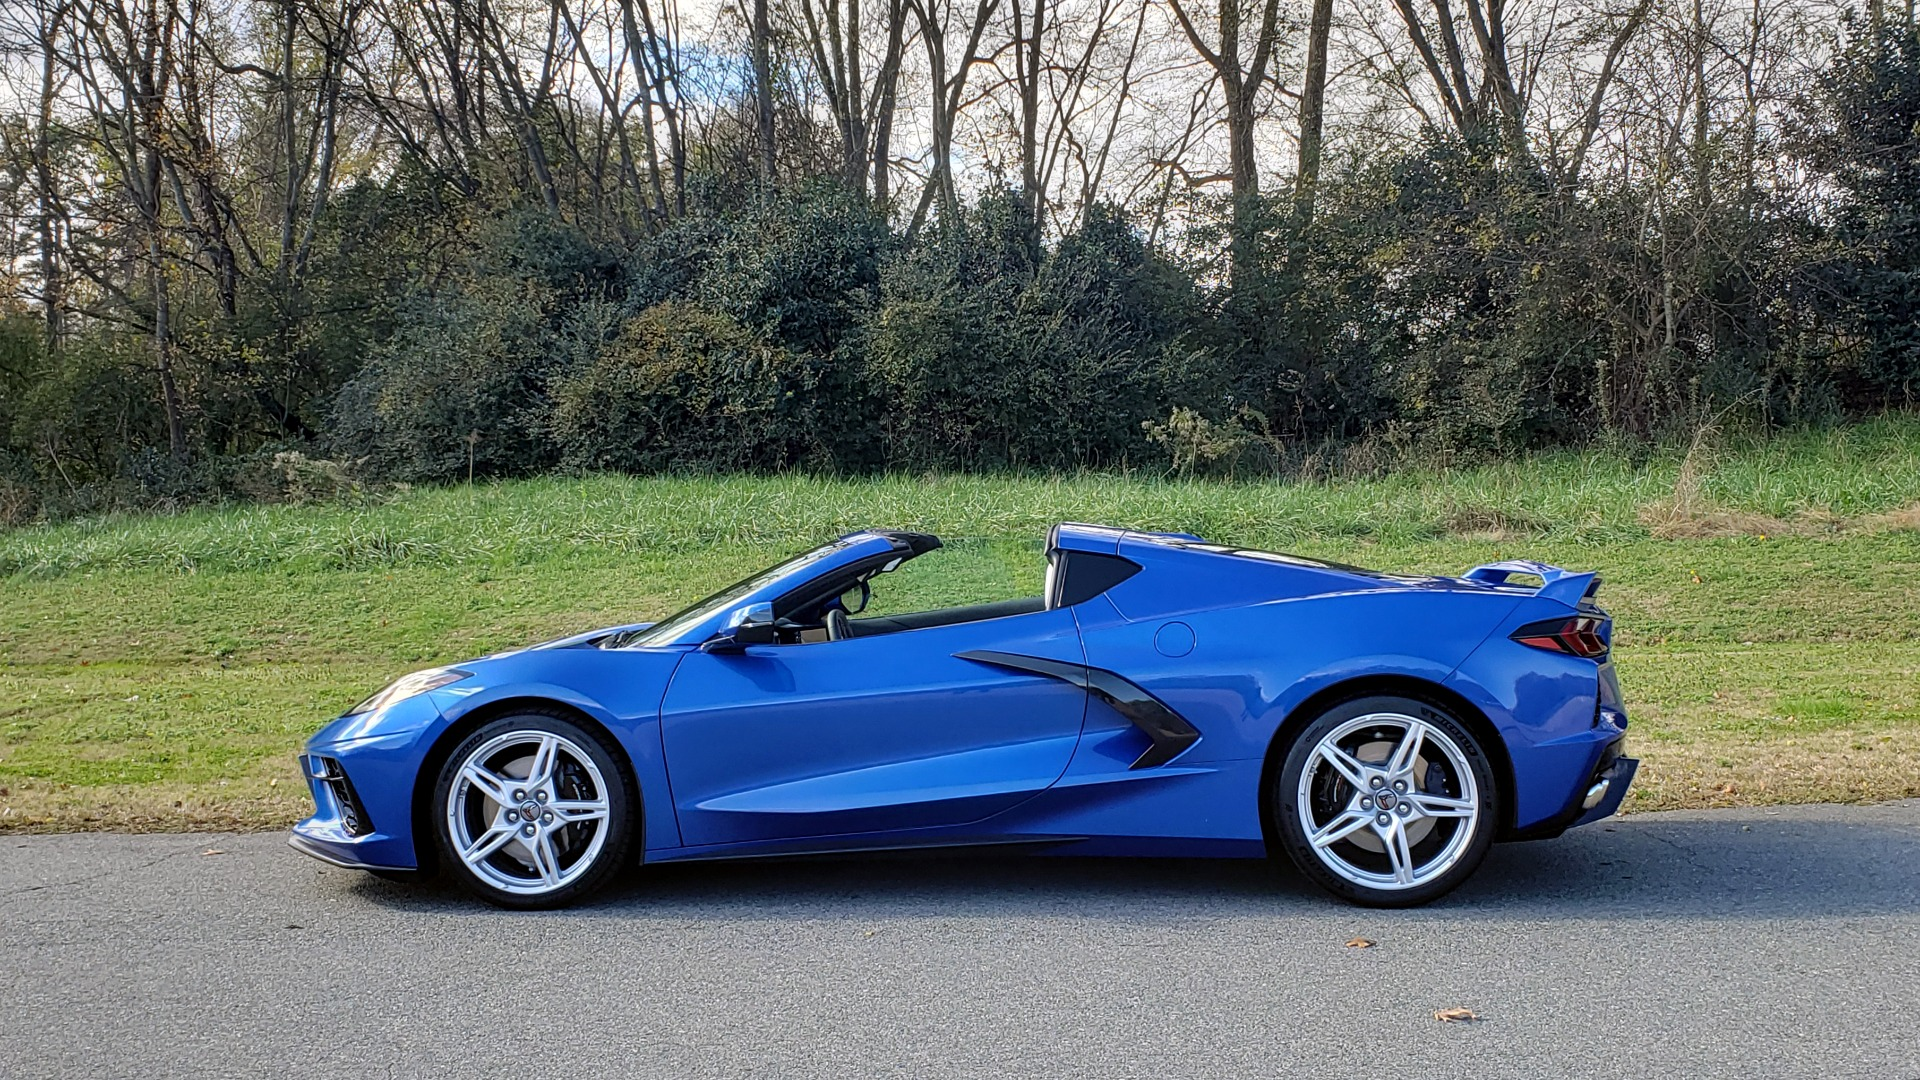 Used 2020 Chevrolet C8 CORVETTE STINGRAY 2LT COUPE / NAV / HUD / BOSE / GT2 SEATS / FRONT LIFT / REARVIEW for sale $98,999 at Formula Imports in Charlotte NC 28227 6